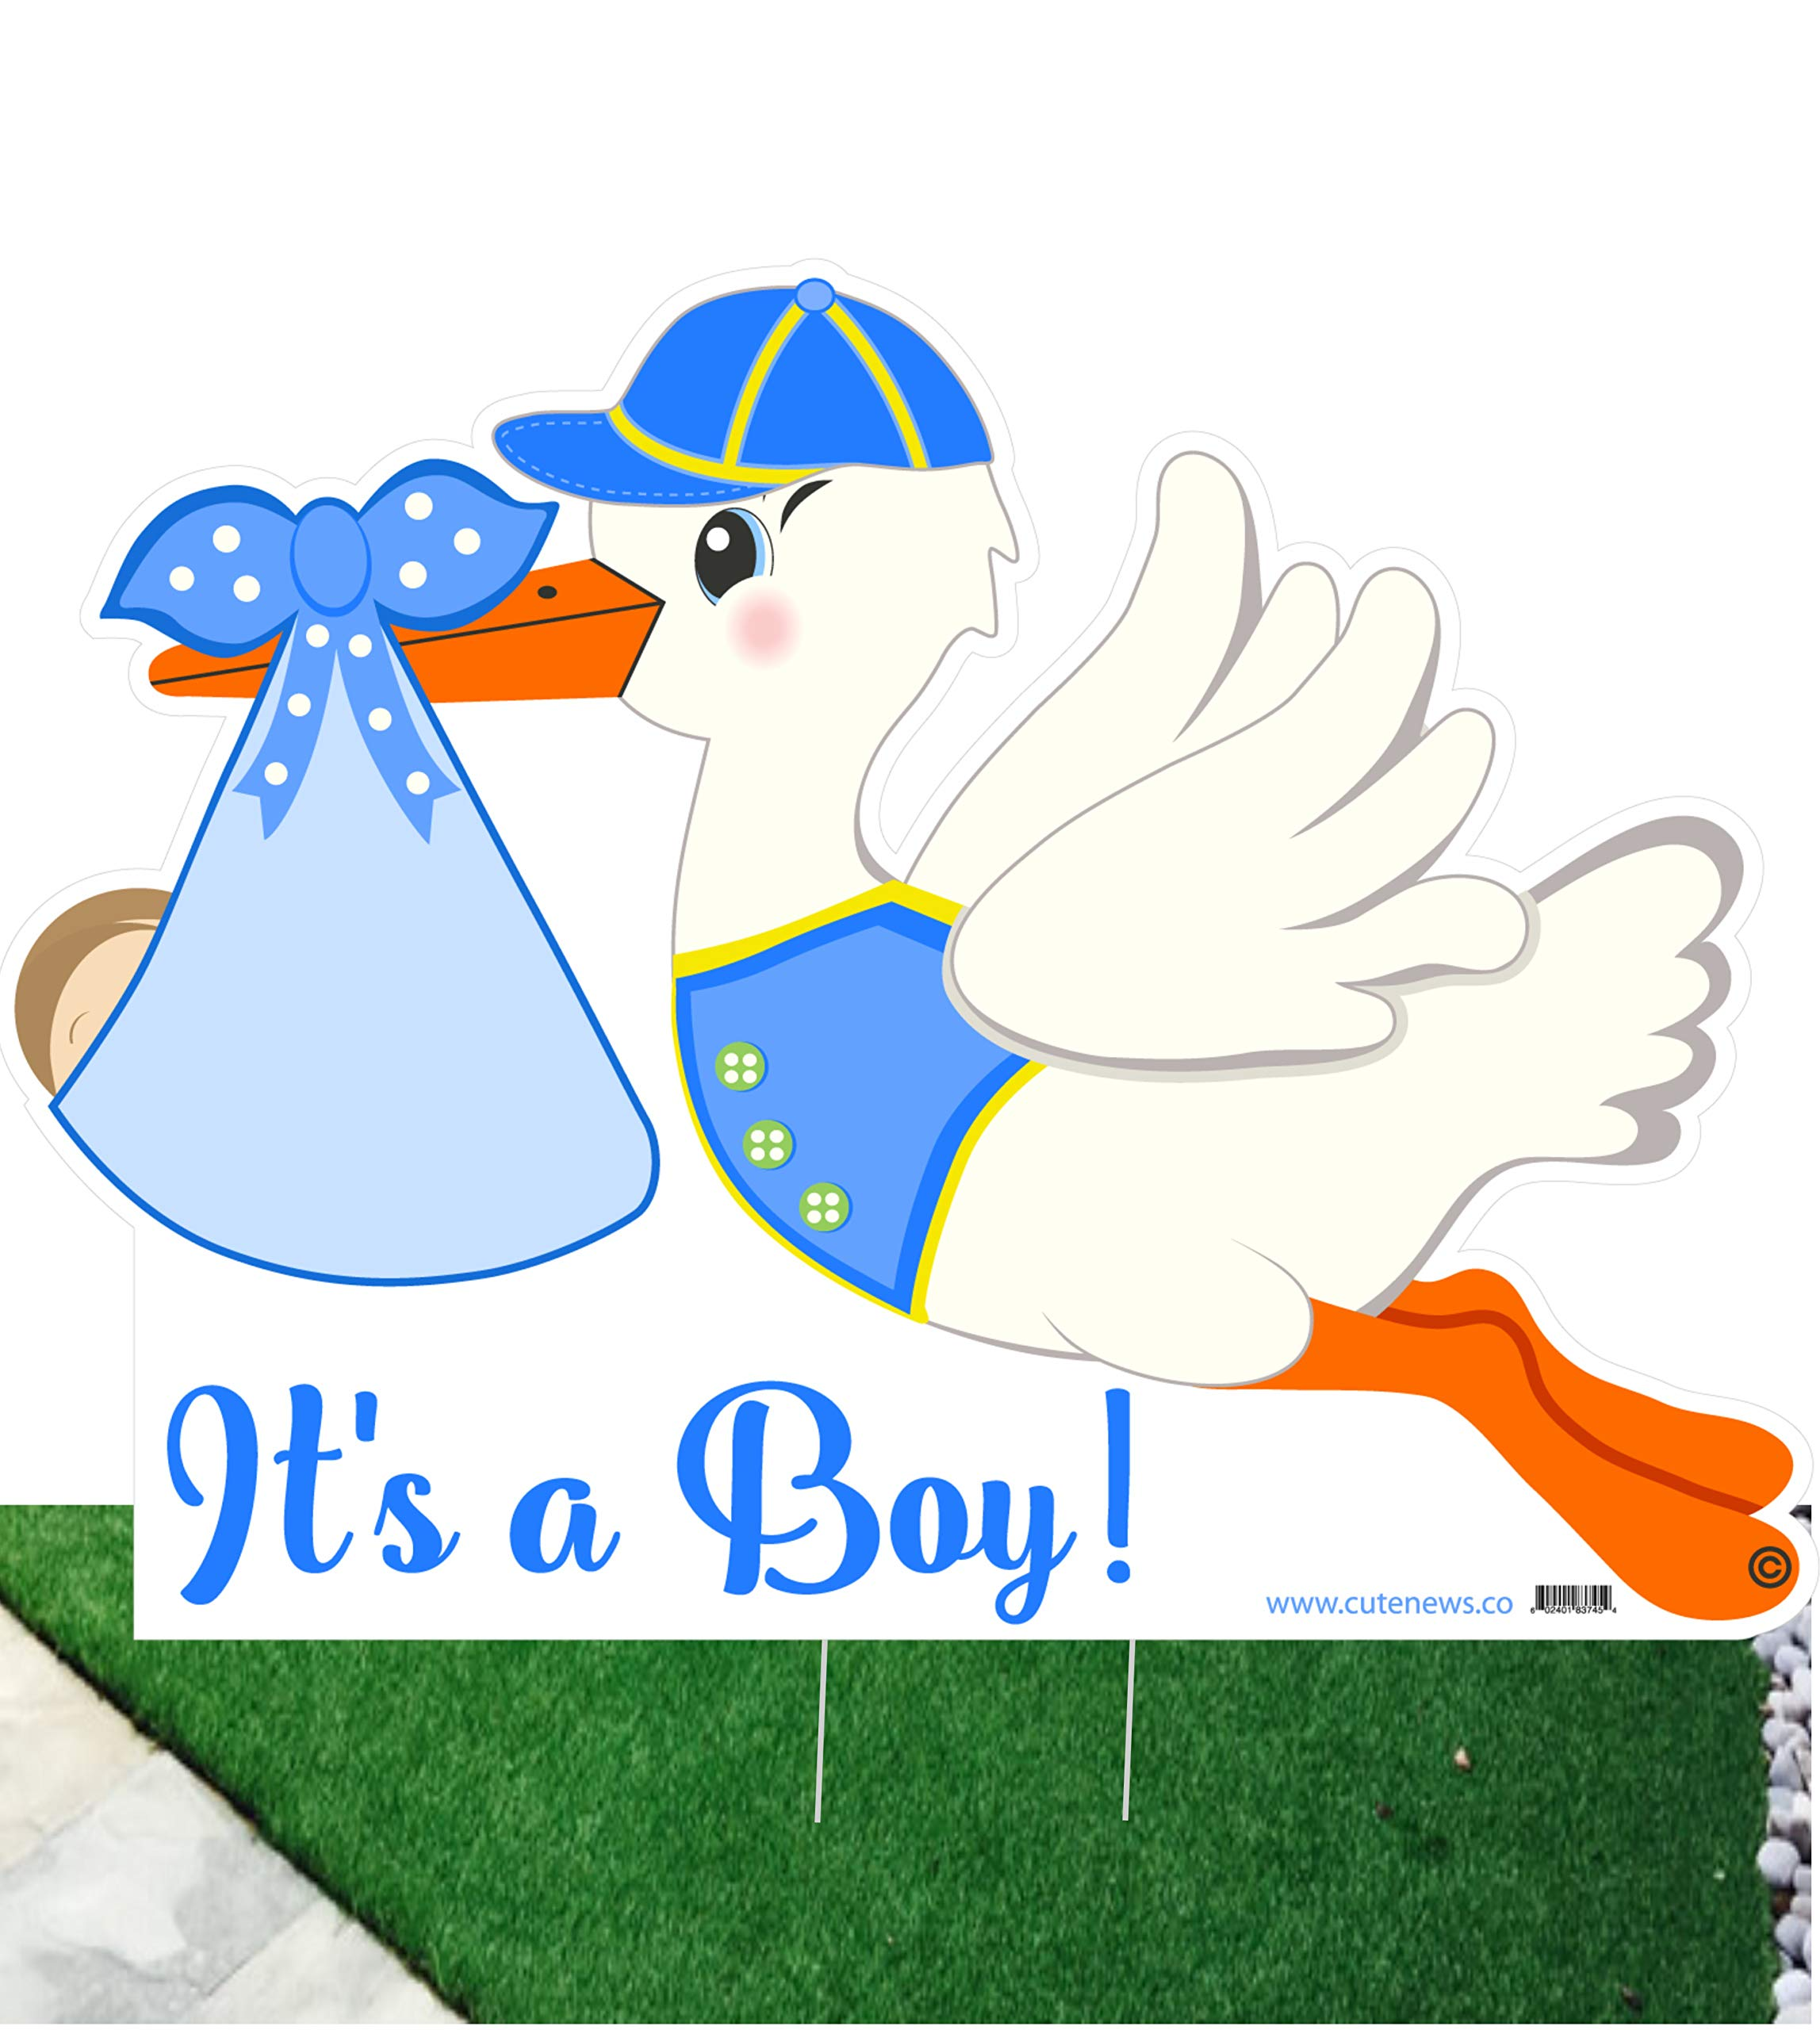 It's a Boy Stork Yard Sign - Welcome Home Newborn Baby Lawn Sign Announcement - Blue Baby Shower Party Decoration